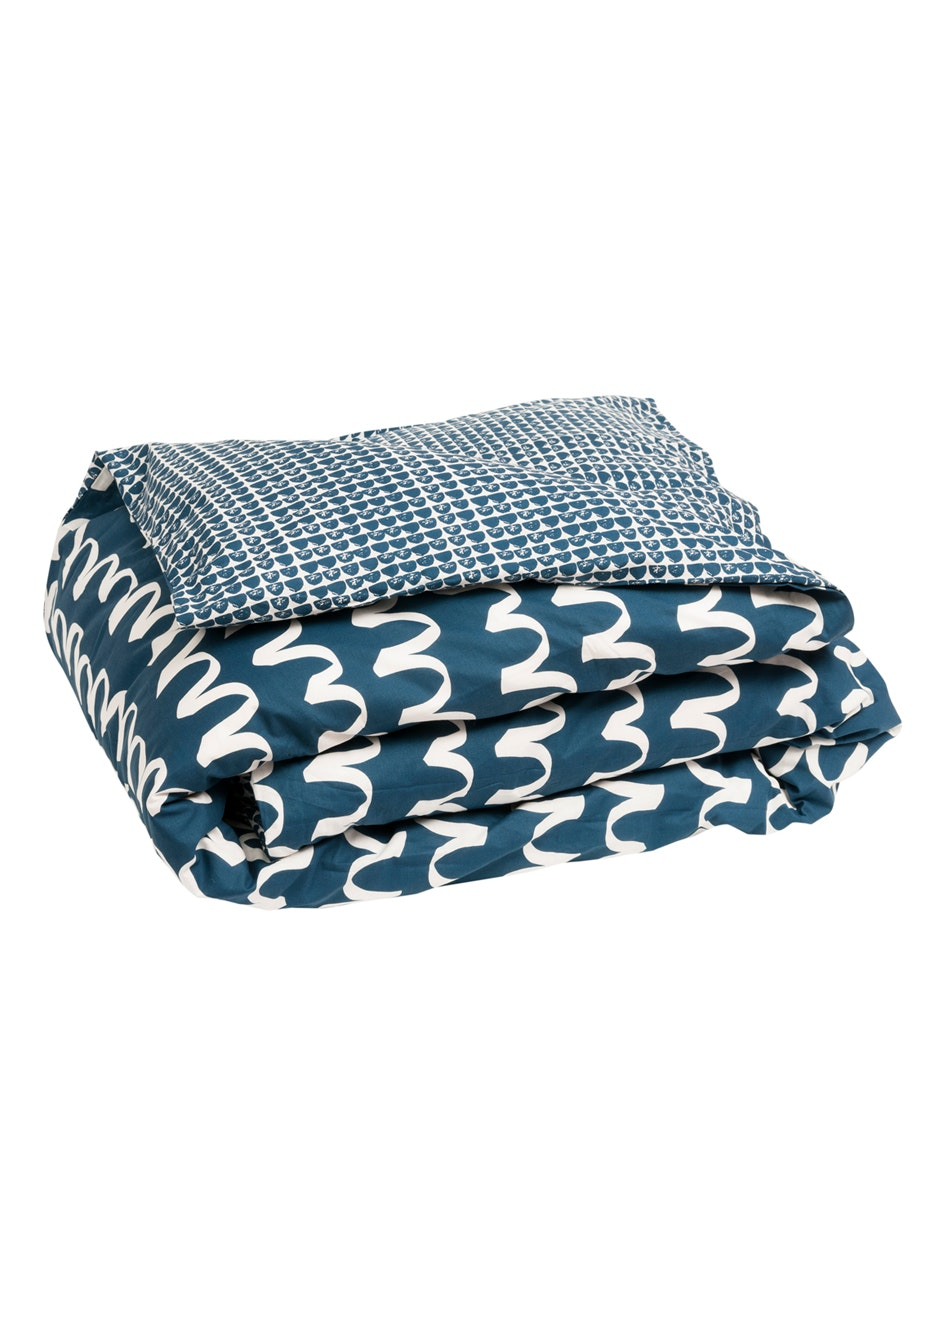 General Eclectic - BlueWaves Duvet Cover - King